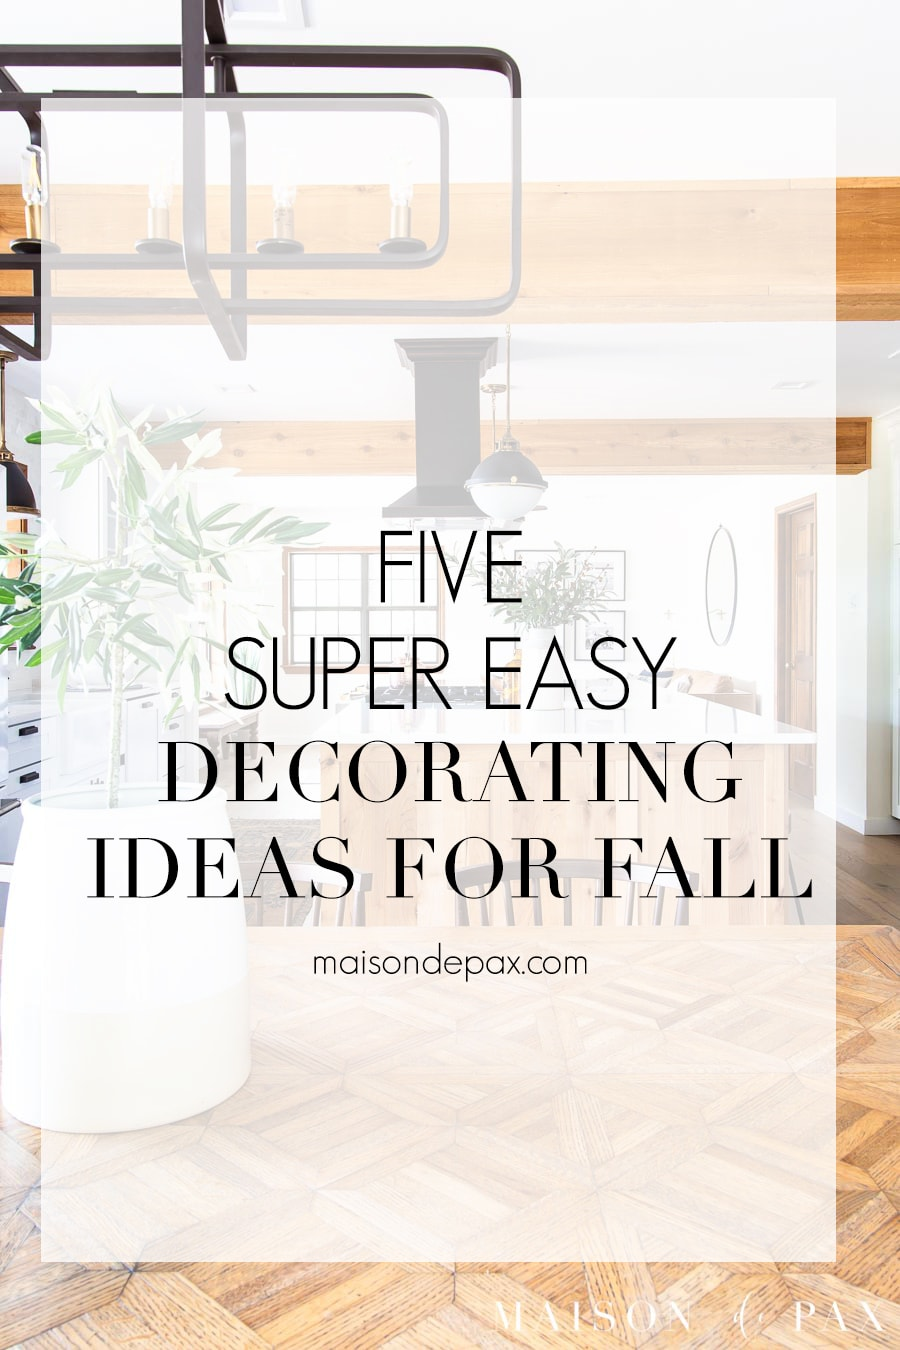 open kitchen dining with overlay: five super easy decorating ideas for fall | Maison de Pax